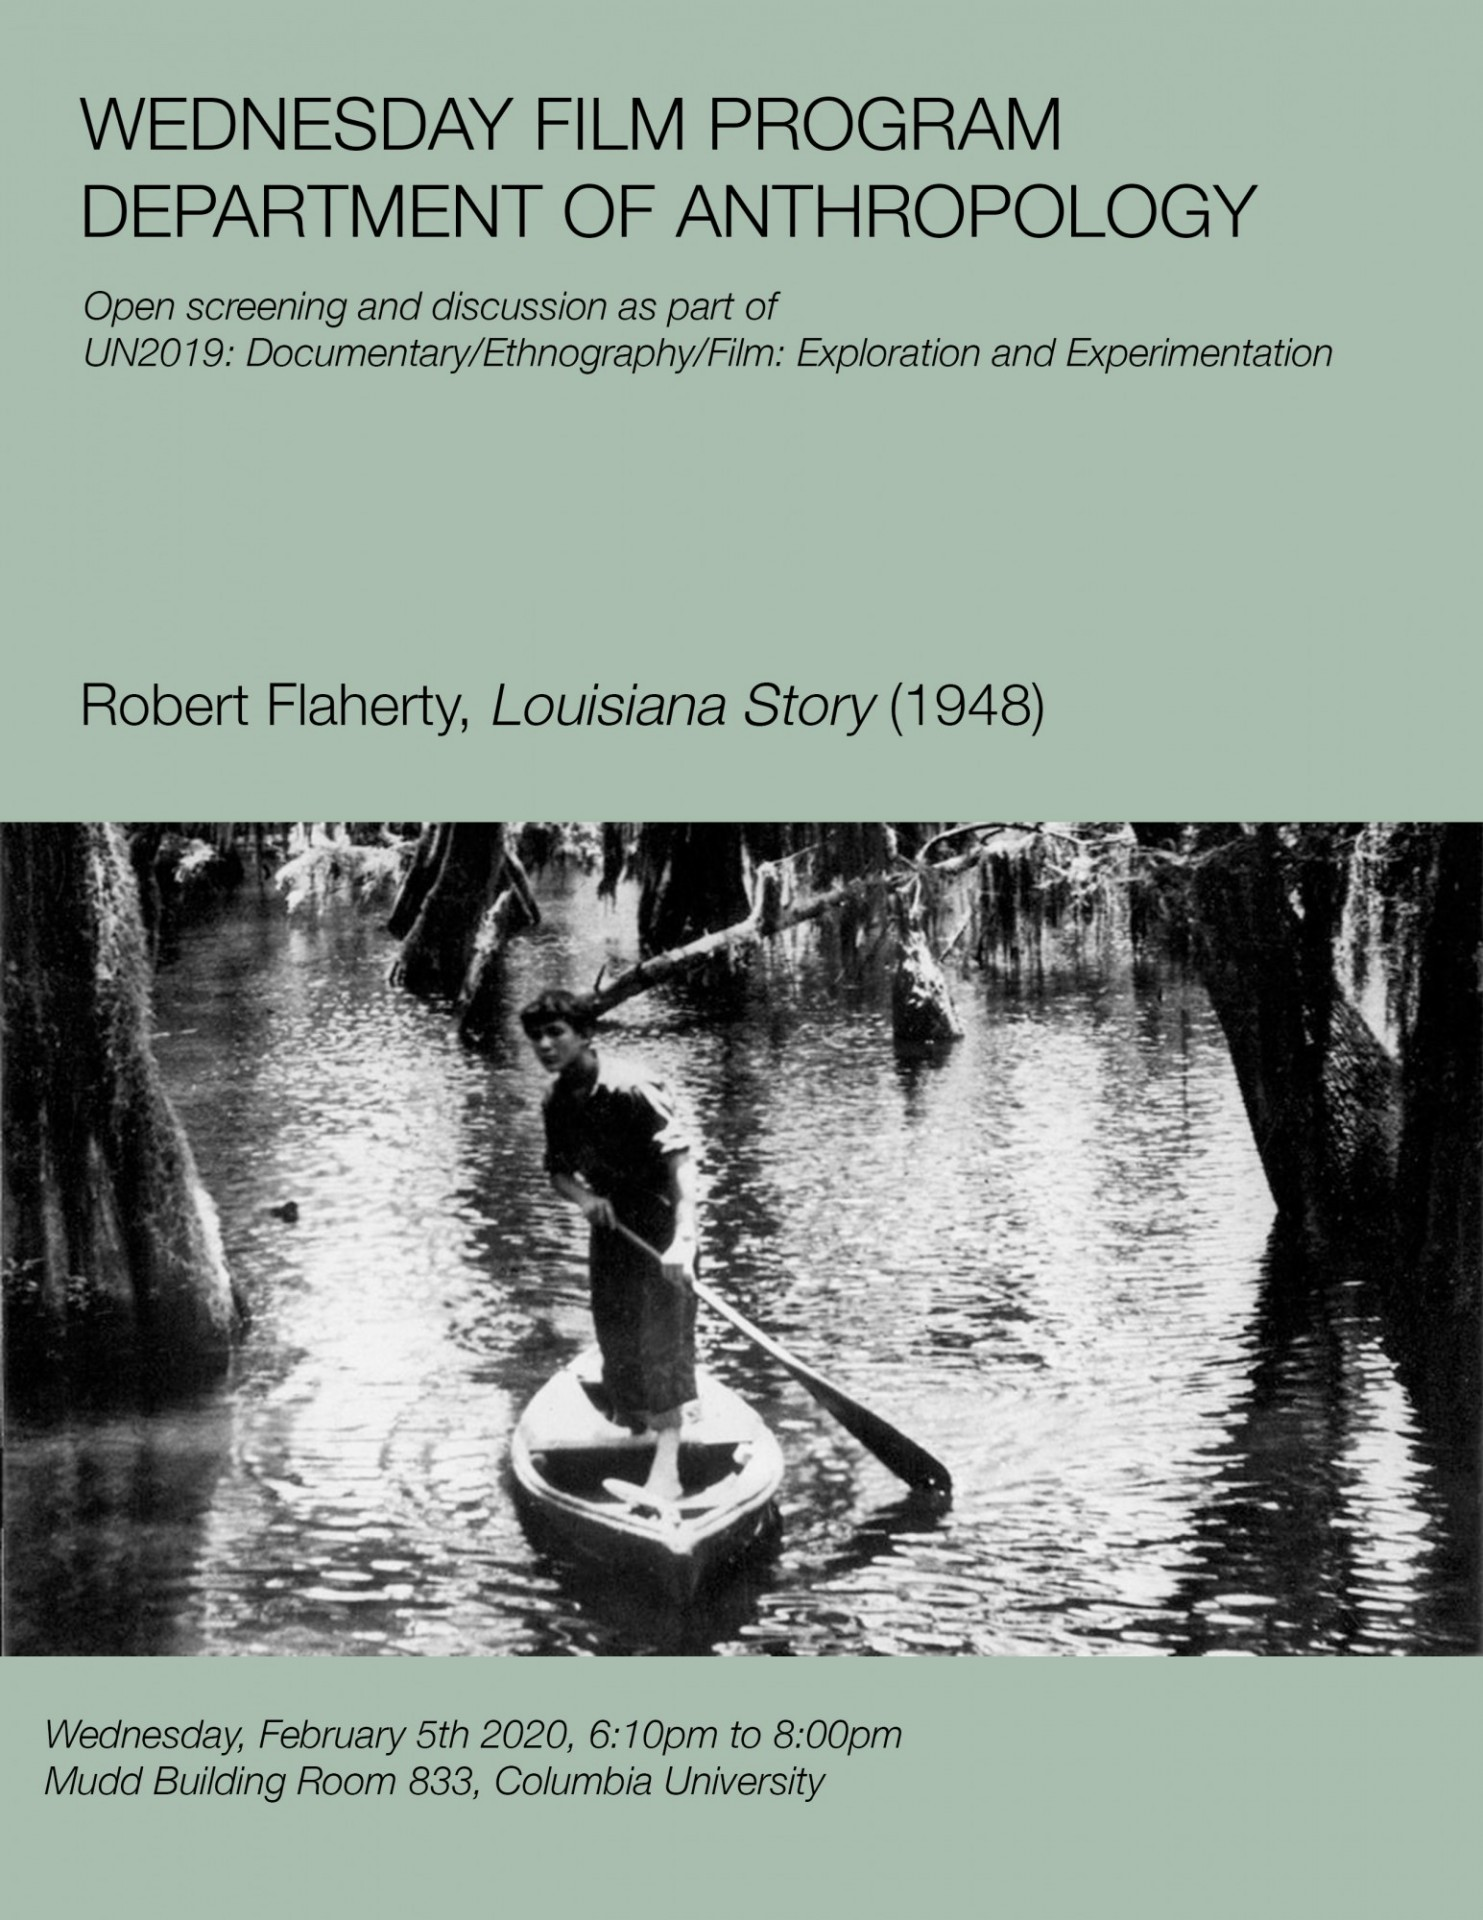 Robert Flaherty, Louisiana Story (1948)